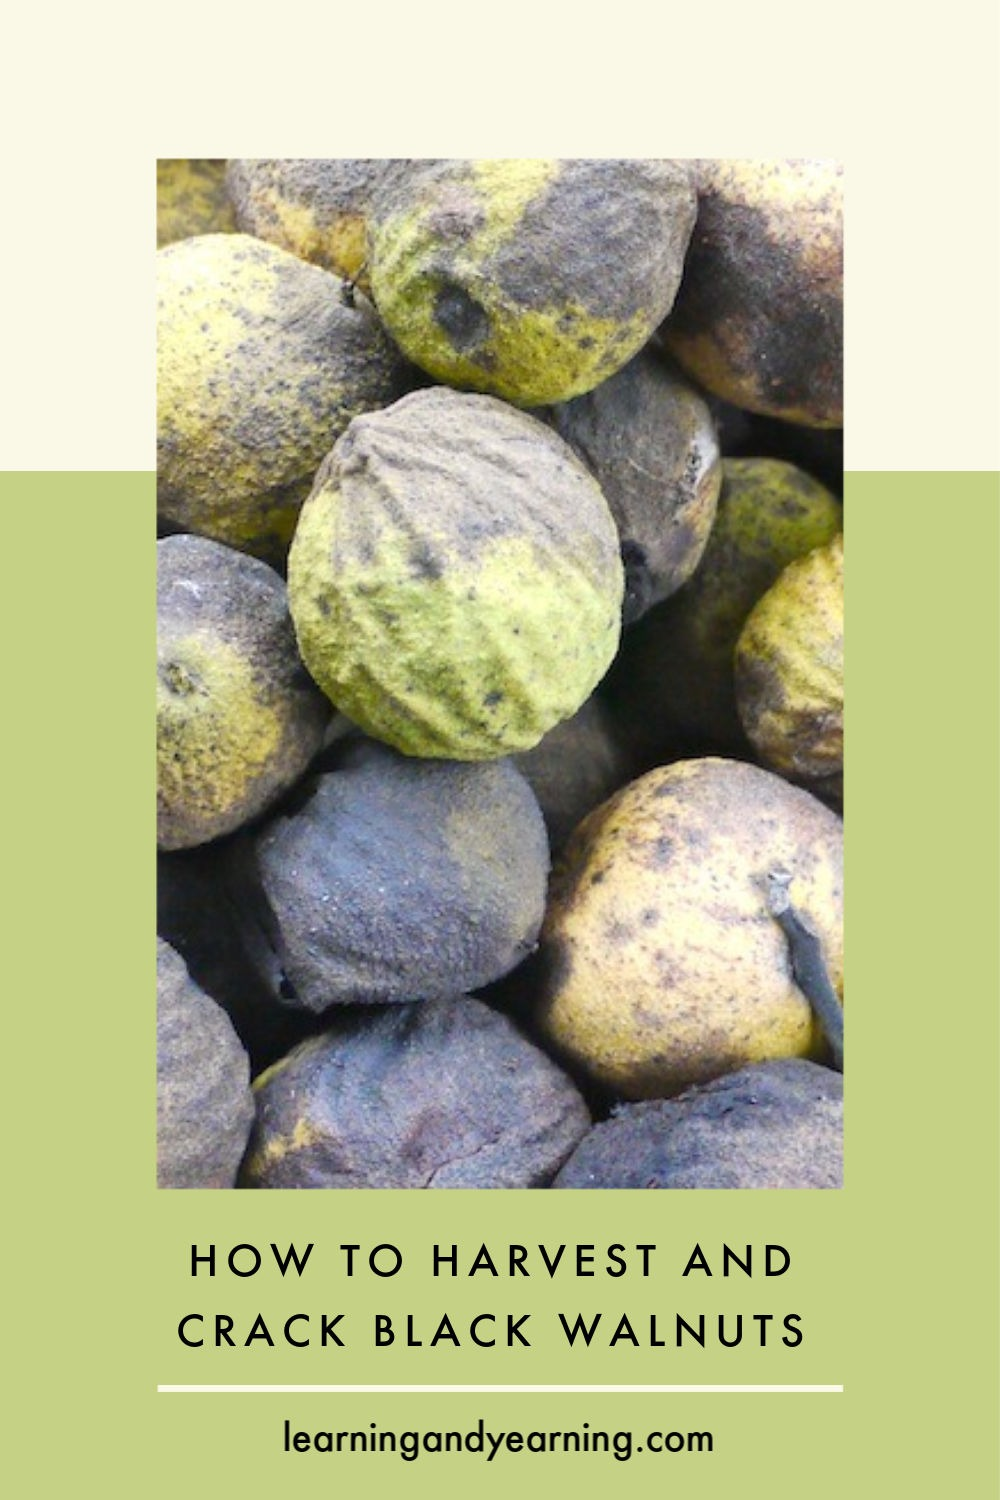 How to harvest and crack black walnuts.